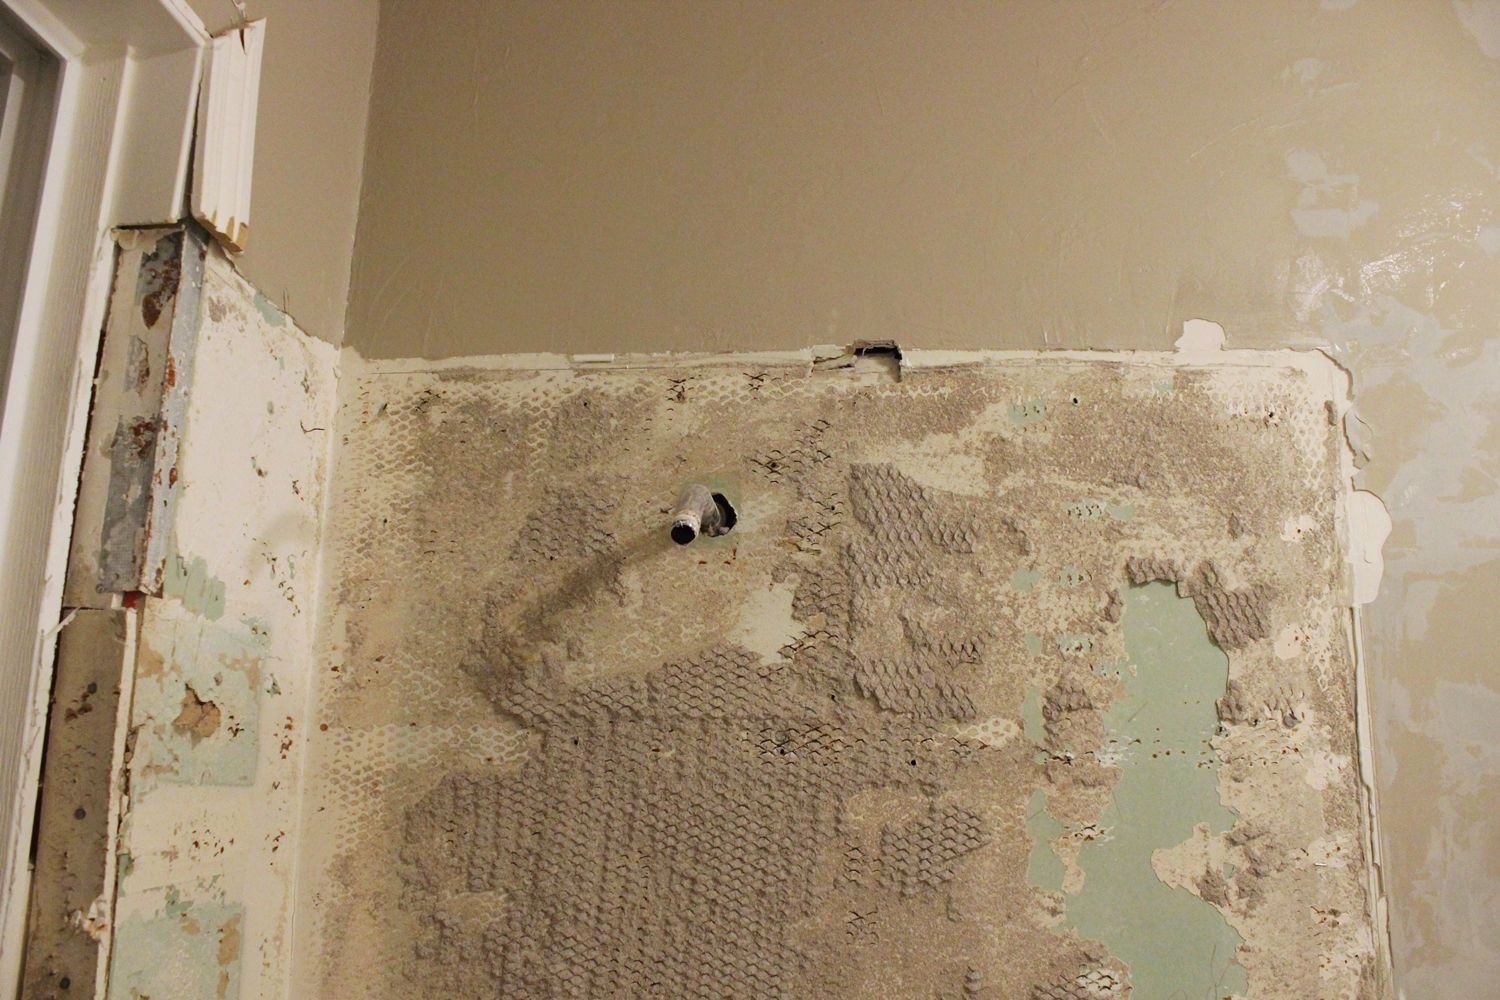 drywall has remained intact